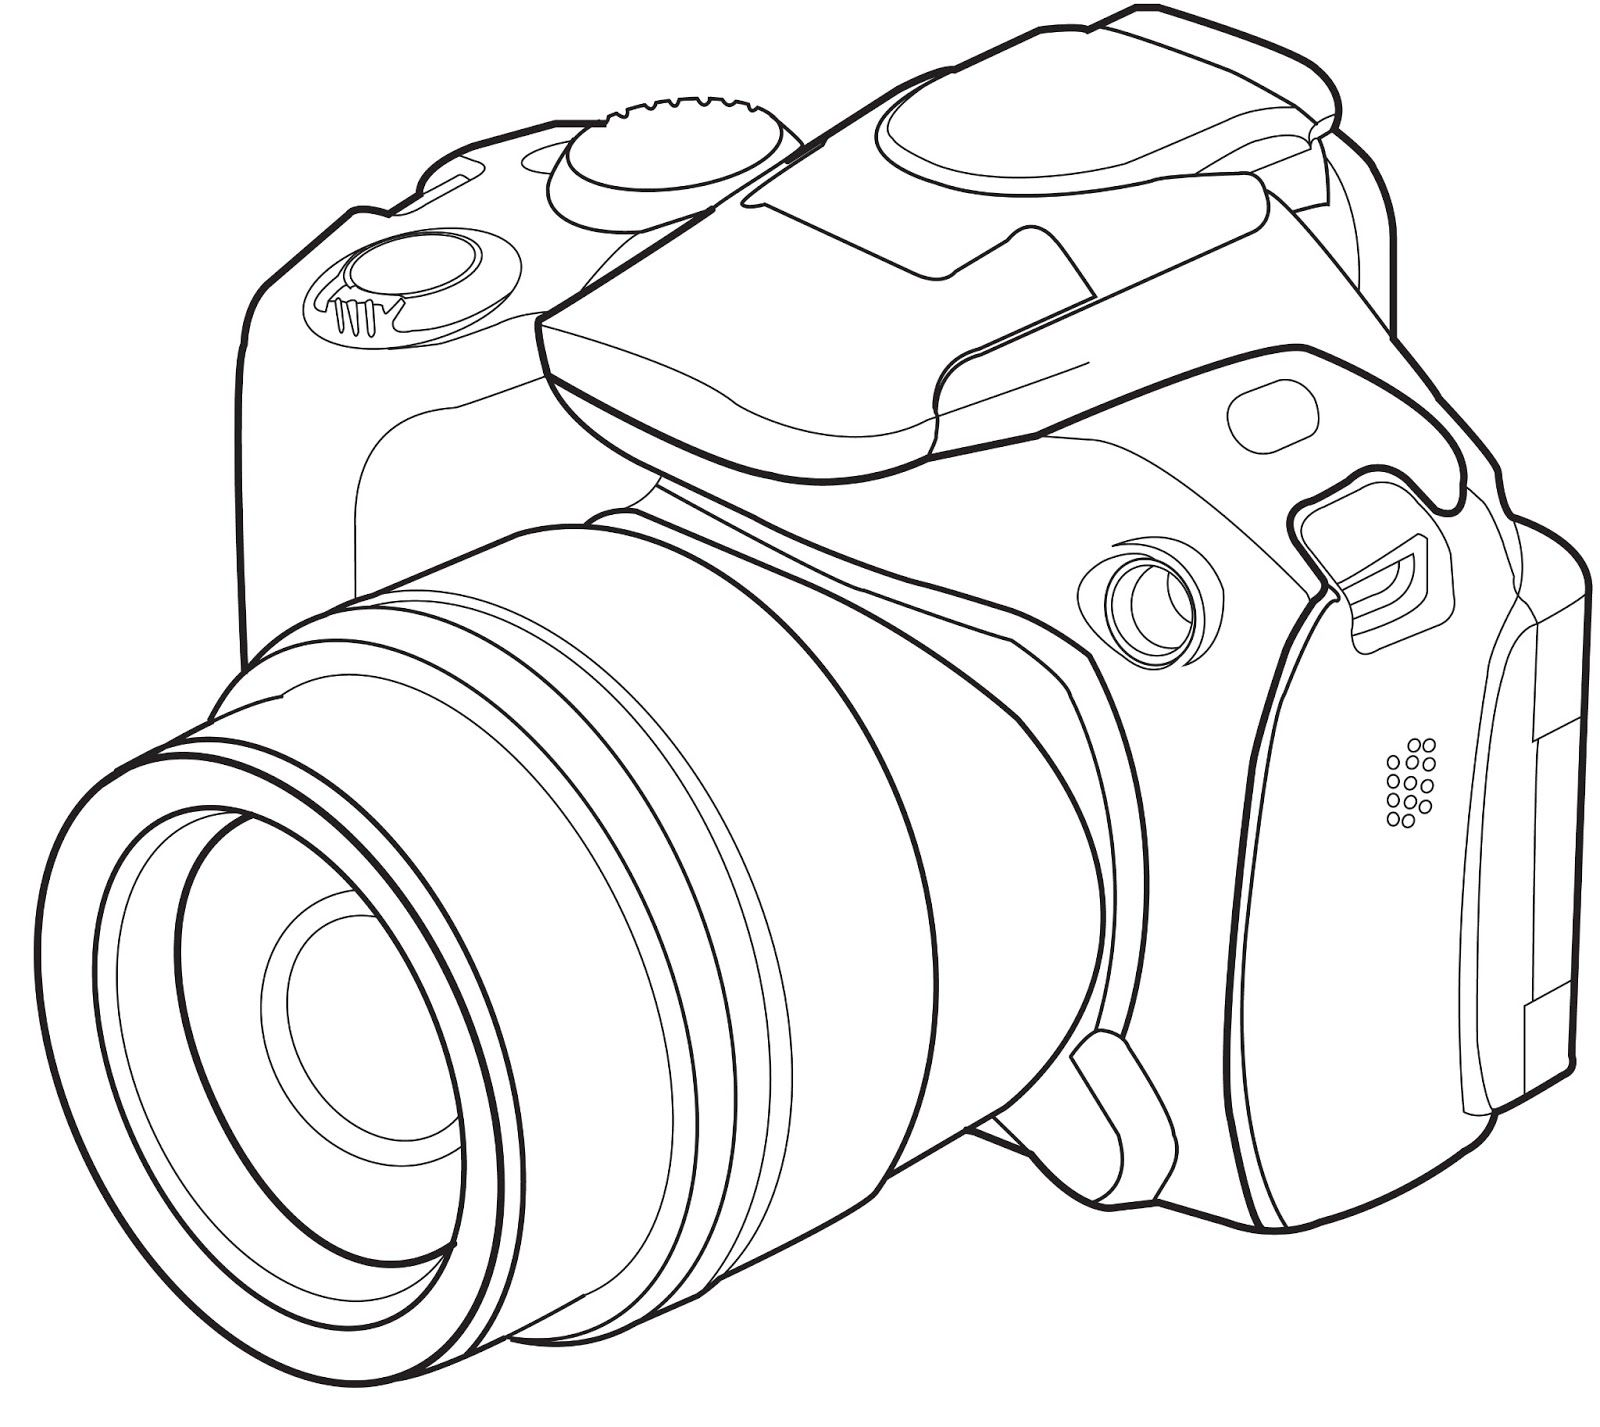 Line Drawing Camera : Image result for camera lsr line drawing nikon dslr